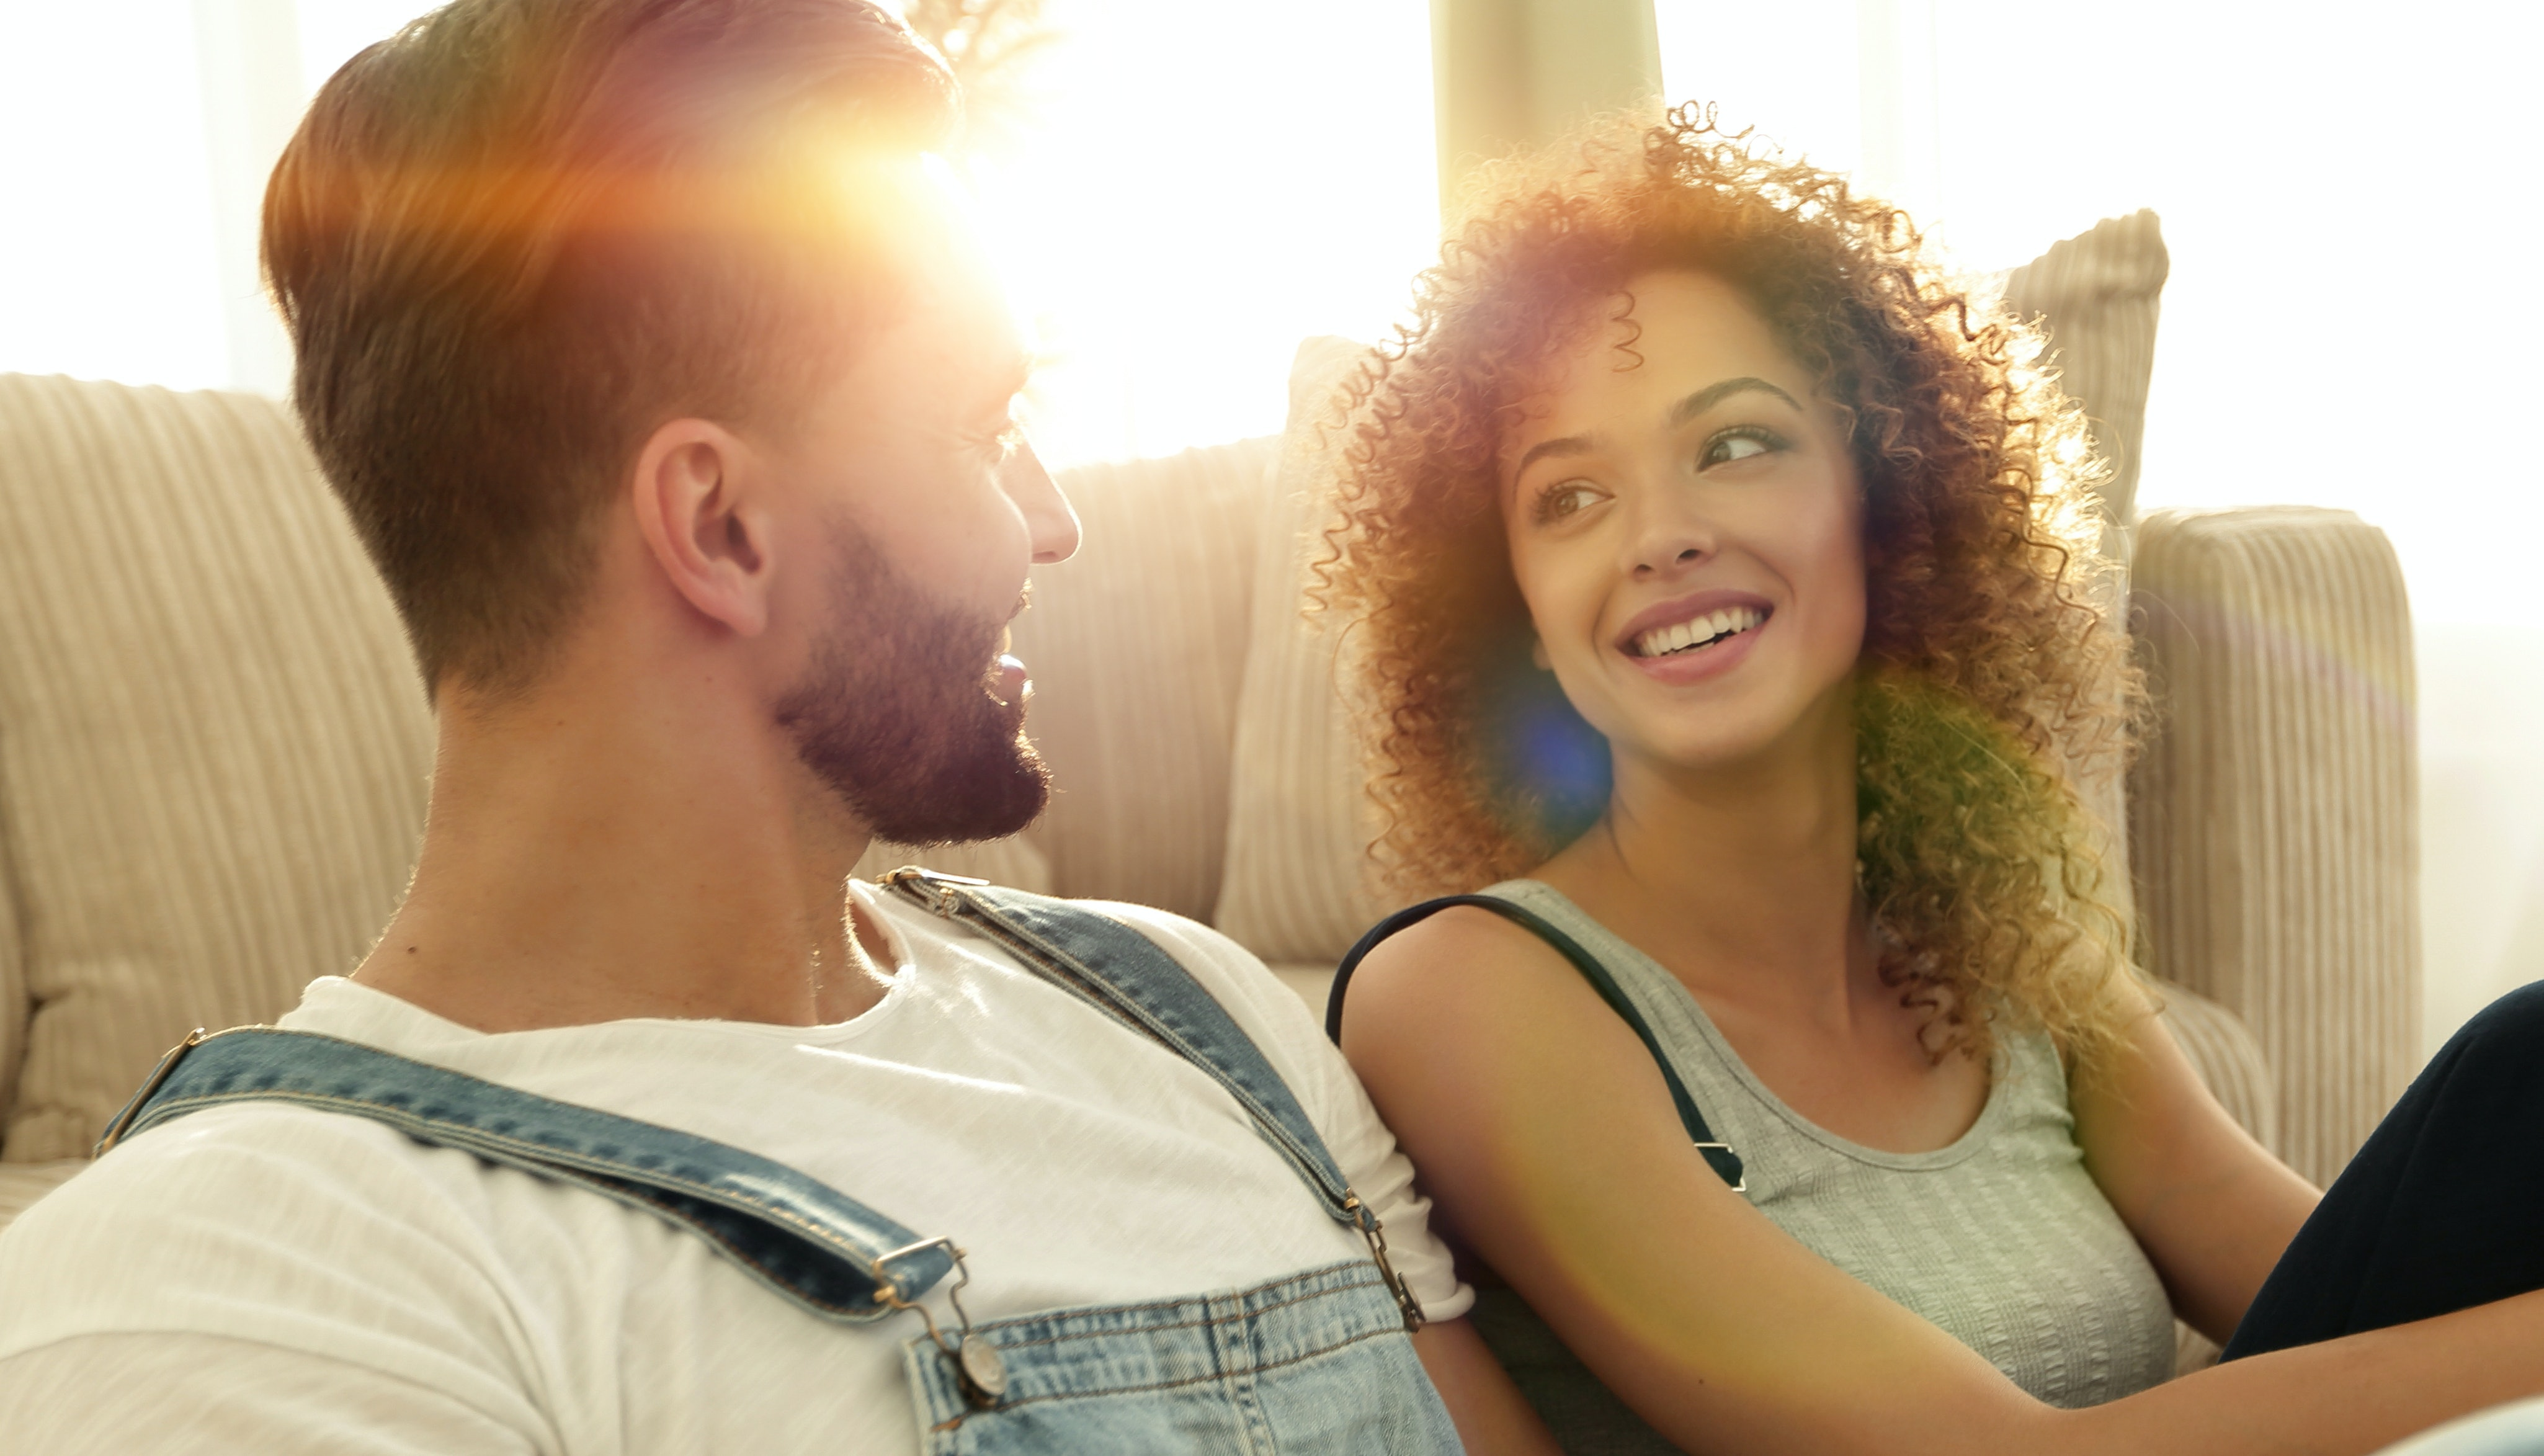 If You're Not Ready To Say I Love You, Here's What To Say